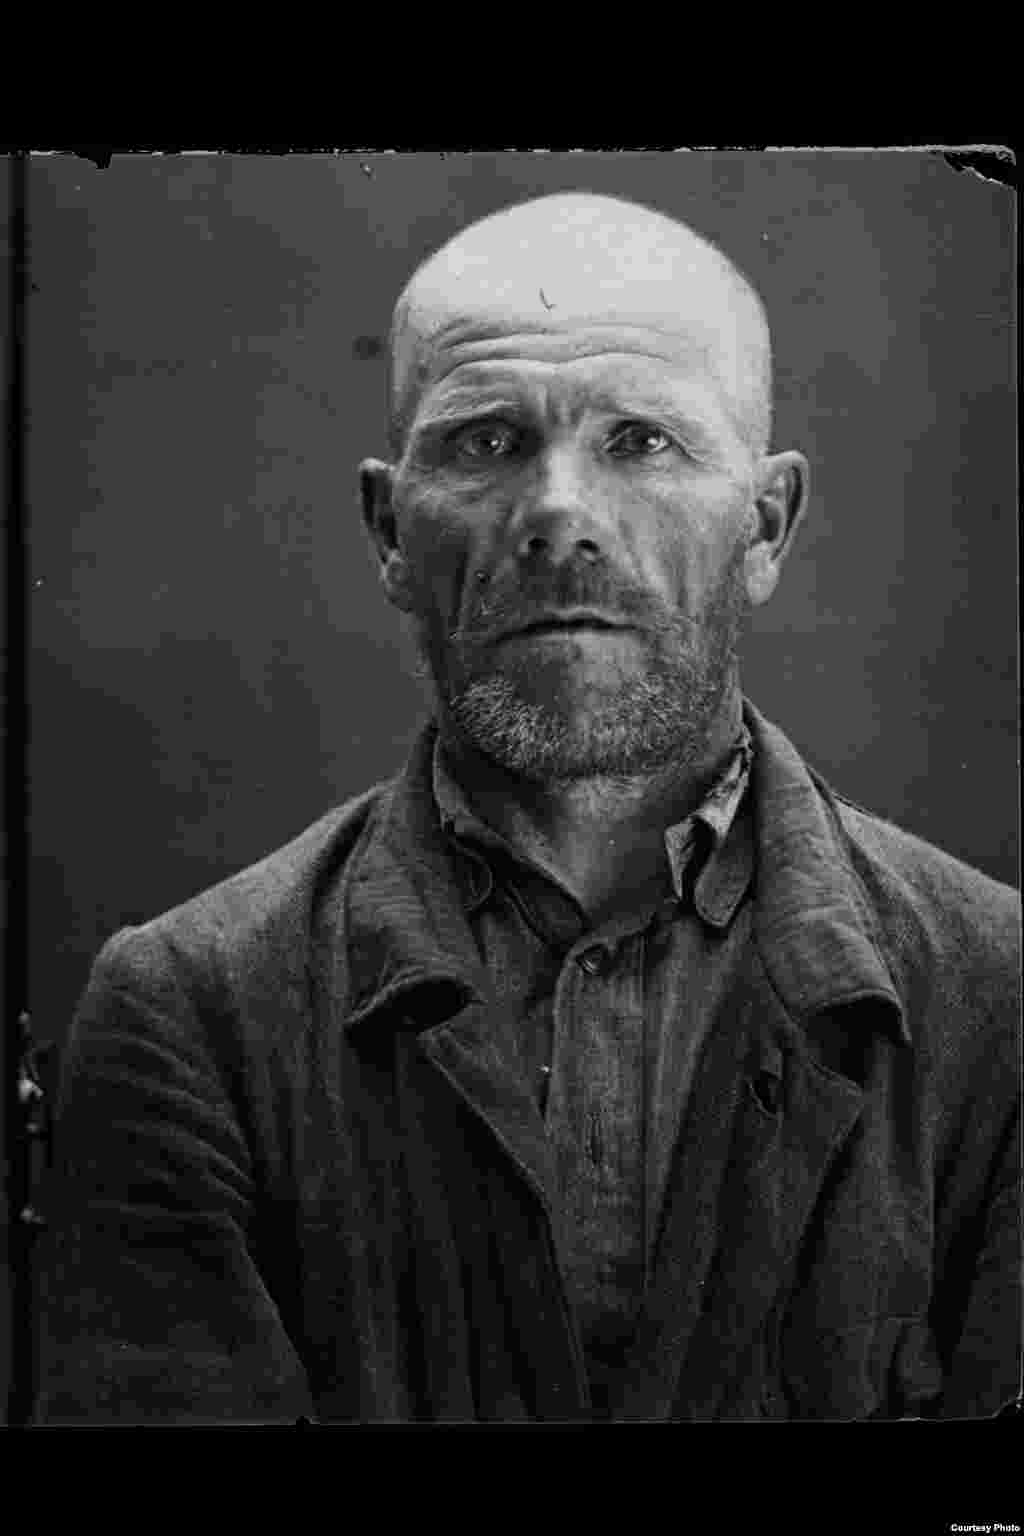 Gavrill Sergeyevich Bogdanov: Russian; born 1888 in Aminevo village, Moscow Oblast; primary education; no party affiliation; laborer; lived in Aminevo. Arrested on August 8, 1937. Sentenced to death on August 19, 1937. Executed on August 20, 1937. Rehabilitated in 1989.